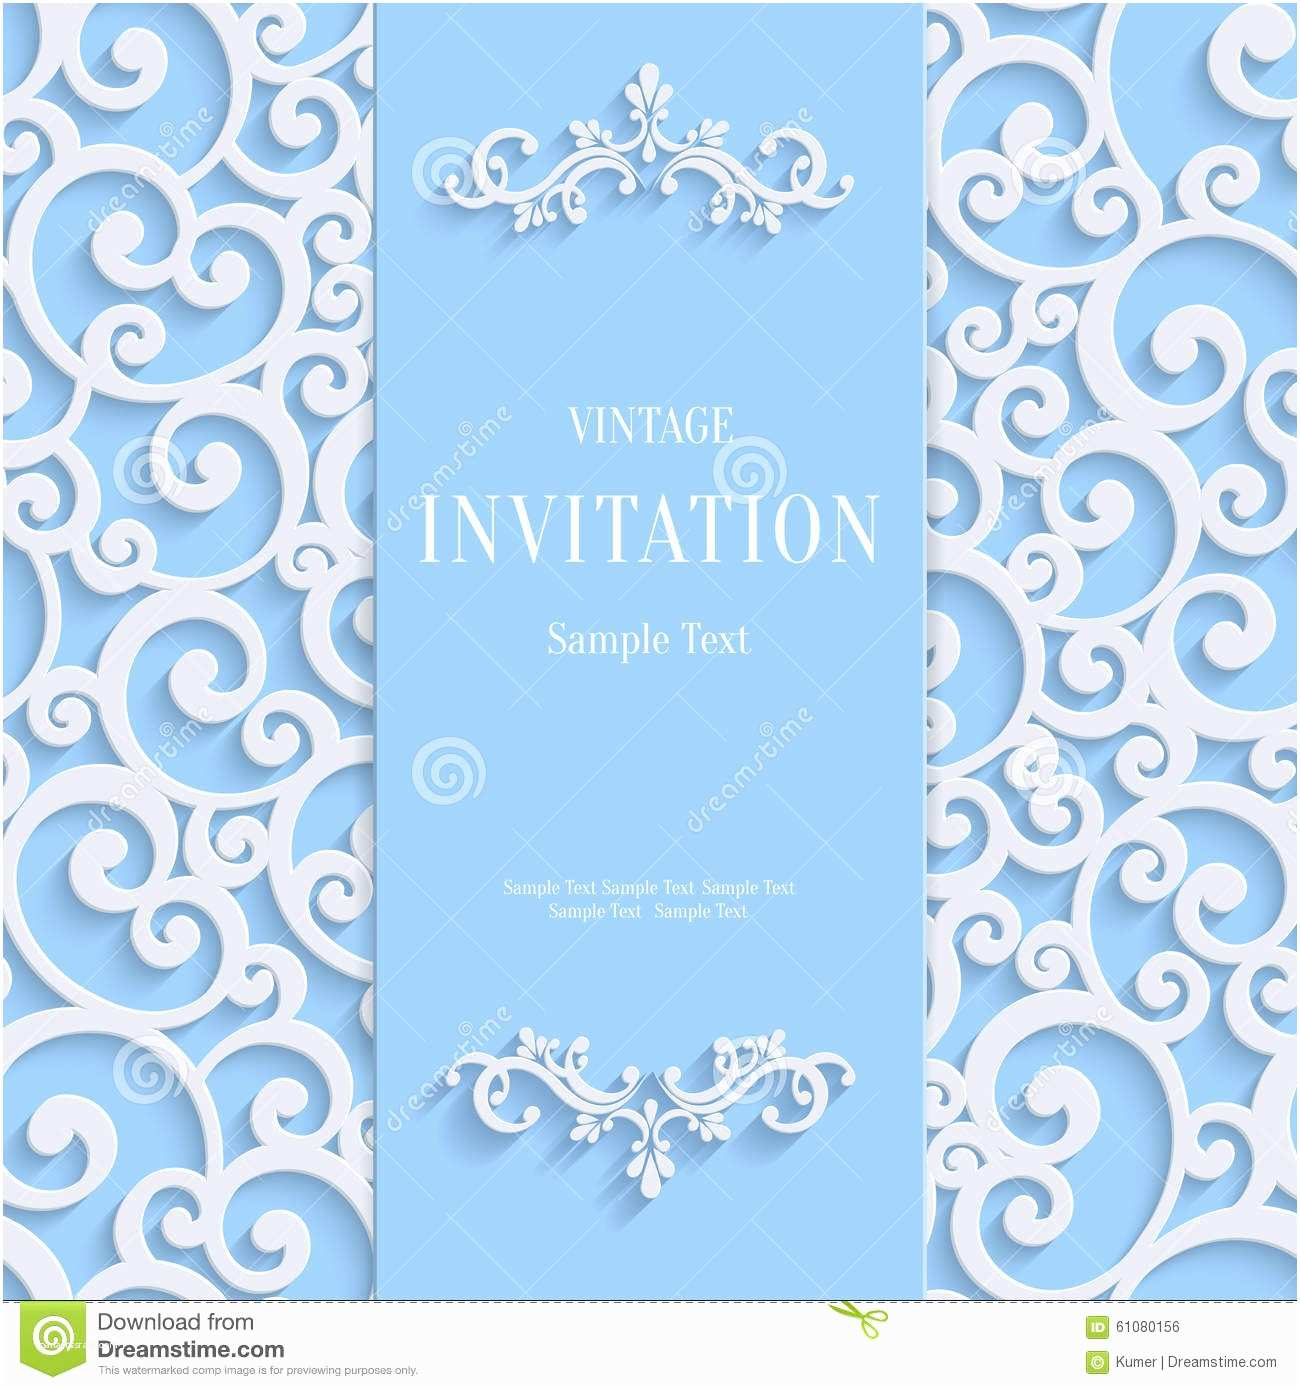 Powder Blue Wedding Invitations Vector Blue 3d Vintage Invitation Card with Swirl Damask